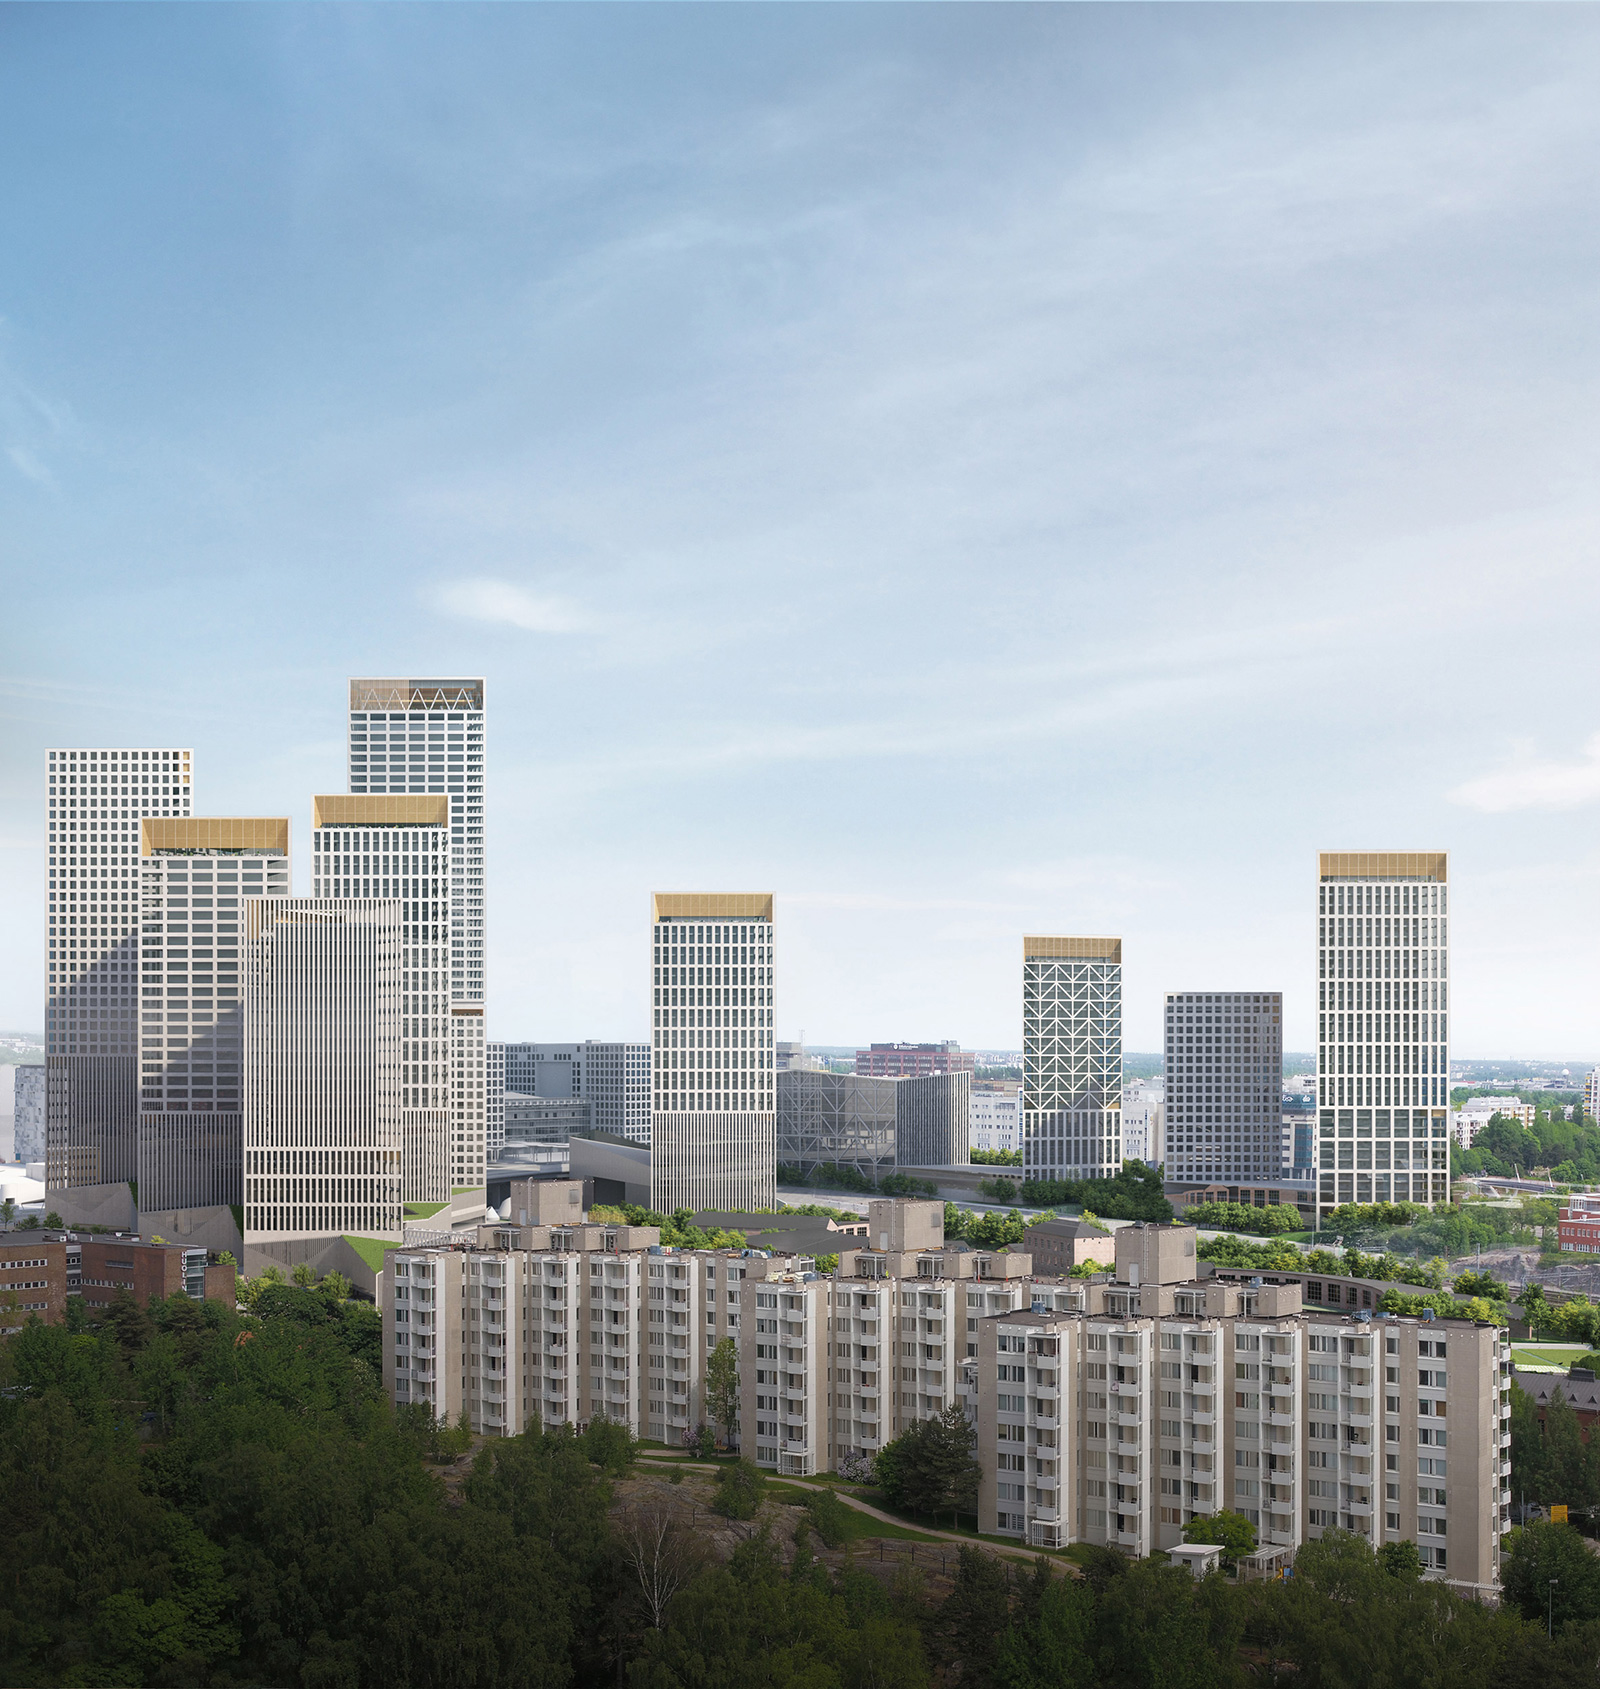 Trogoni towers in Helsinki, part of Lahdelma & Mahlamäki's masterplan for the city